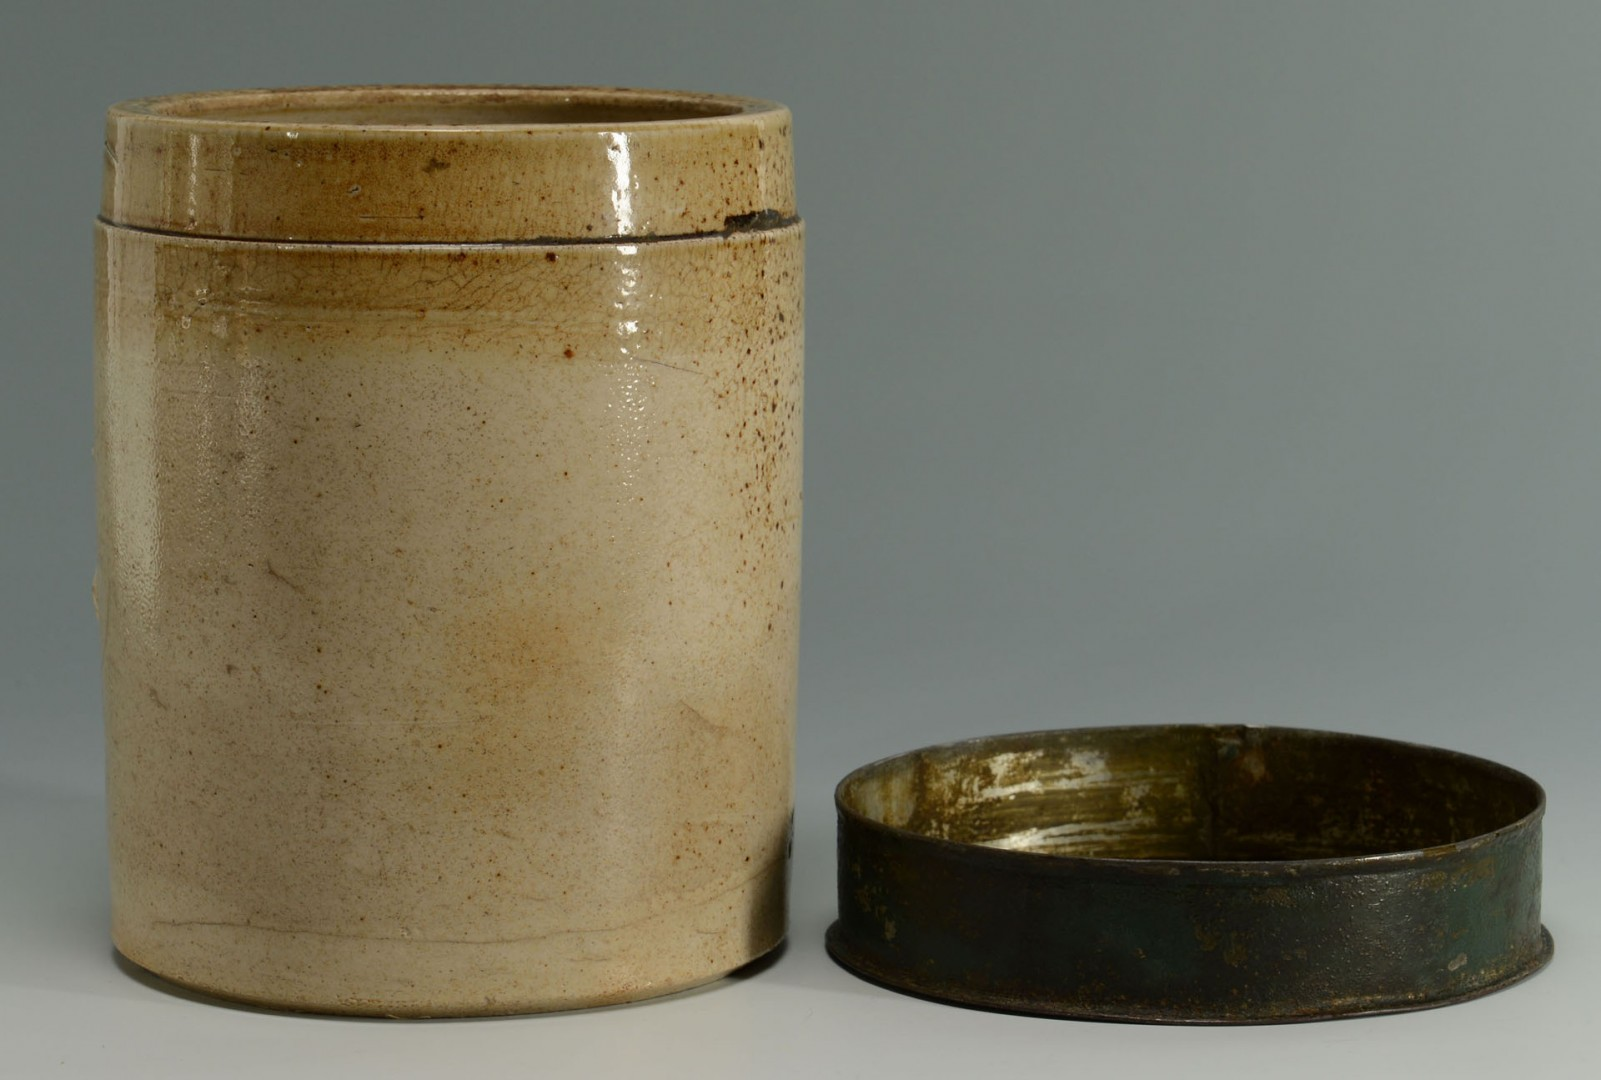 Stoneware Apothecary Jar and French Sardine Box